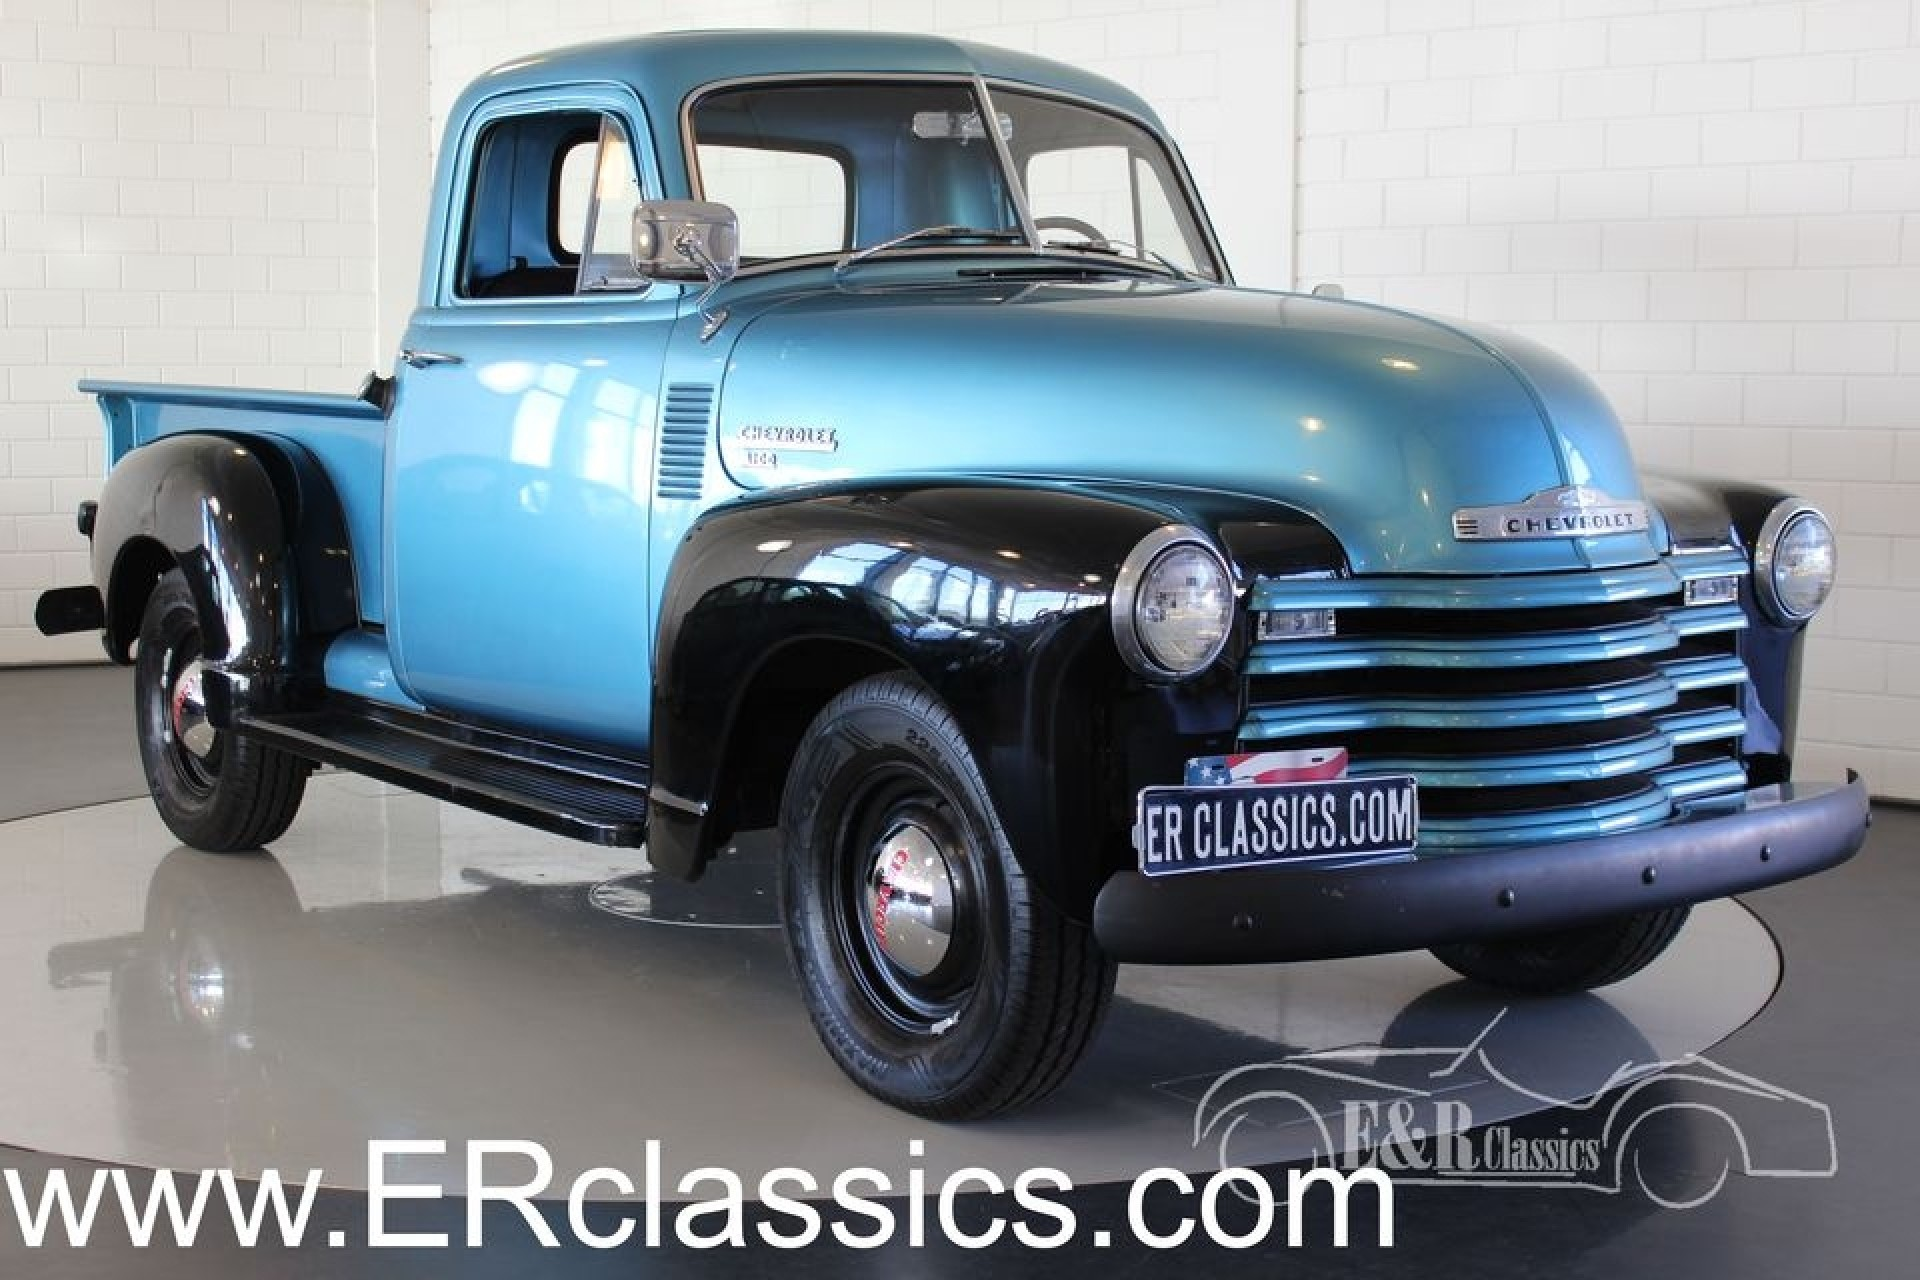 1955 Dodge Truck For Sale >> Chevrolet 3100 Pick-up 1953 for sale at ERclassics